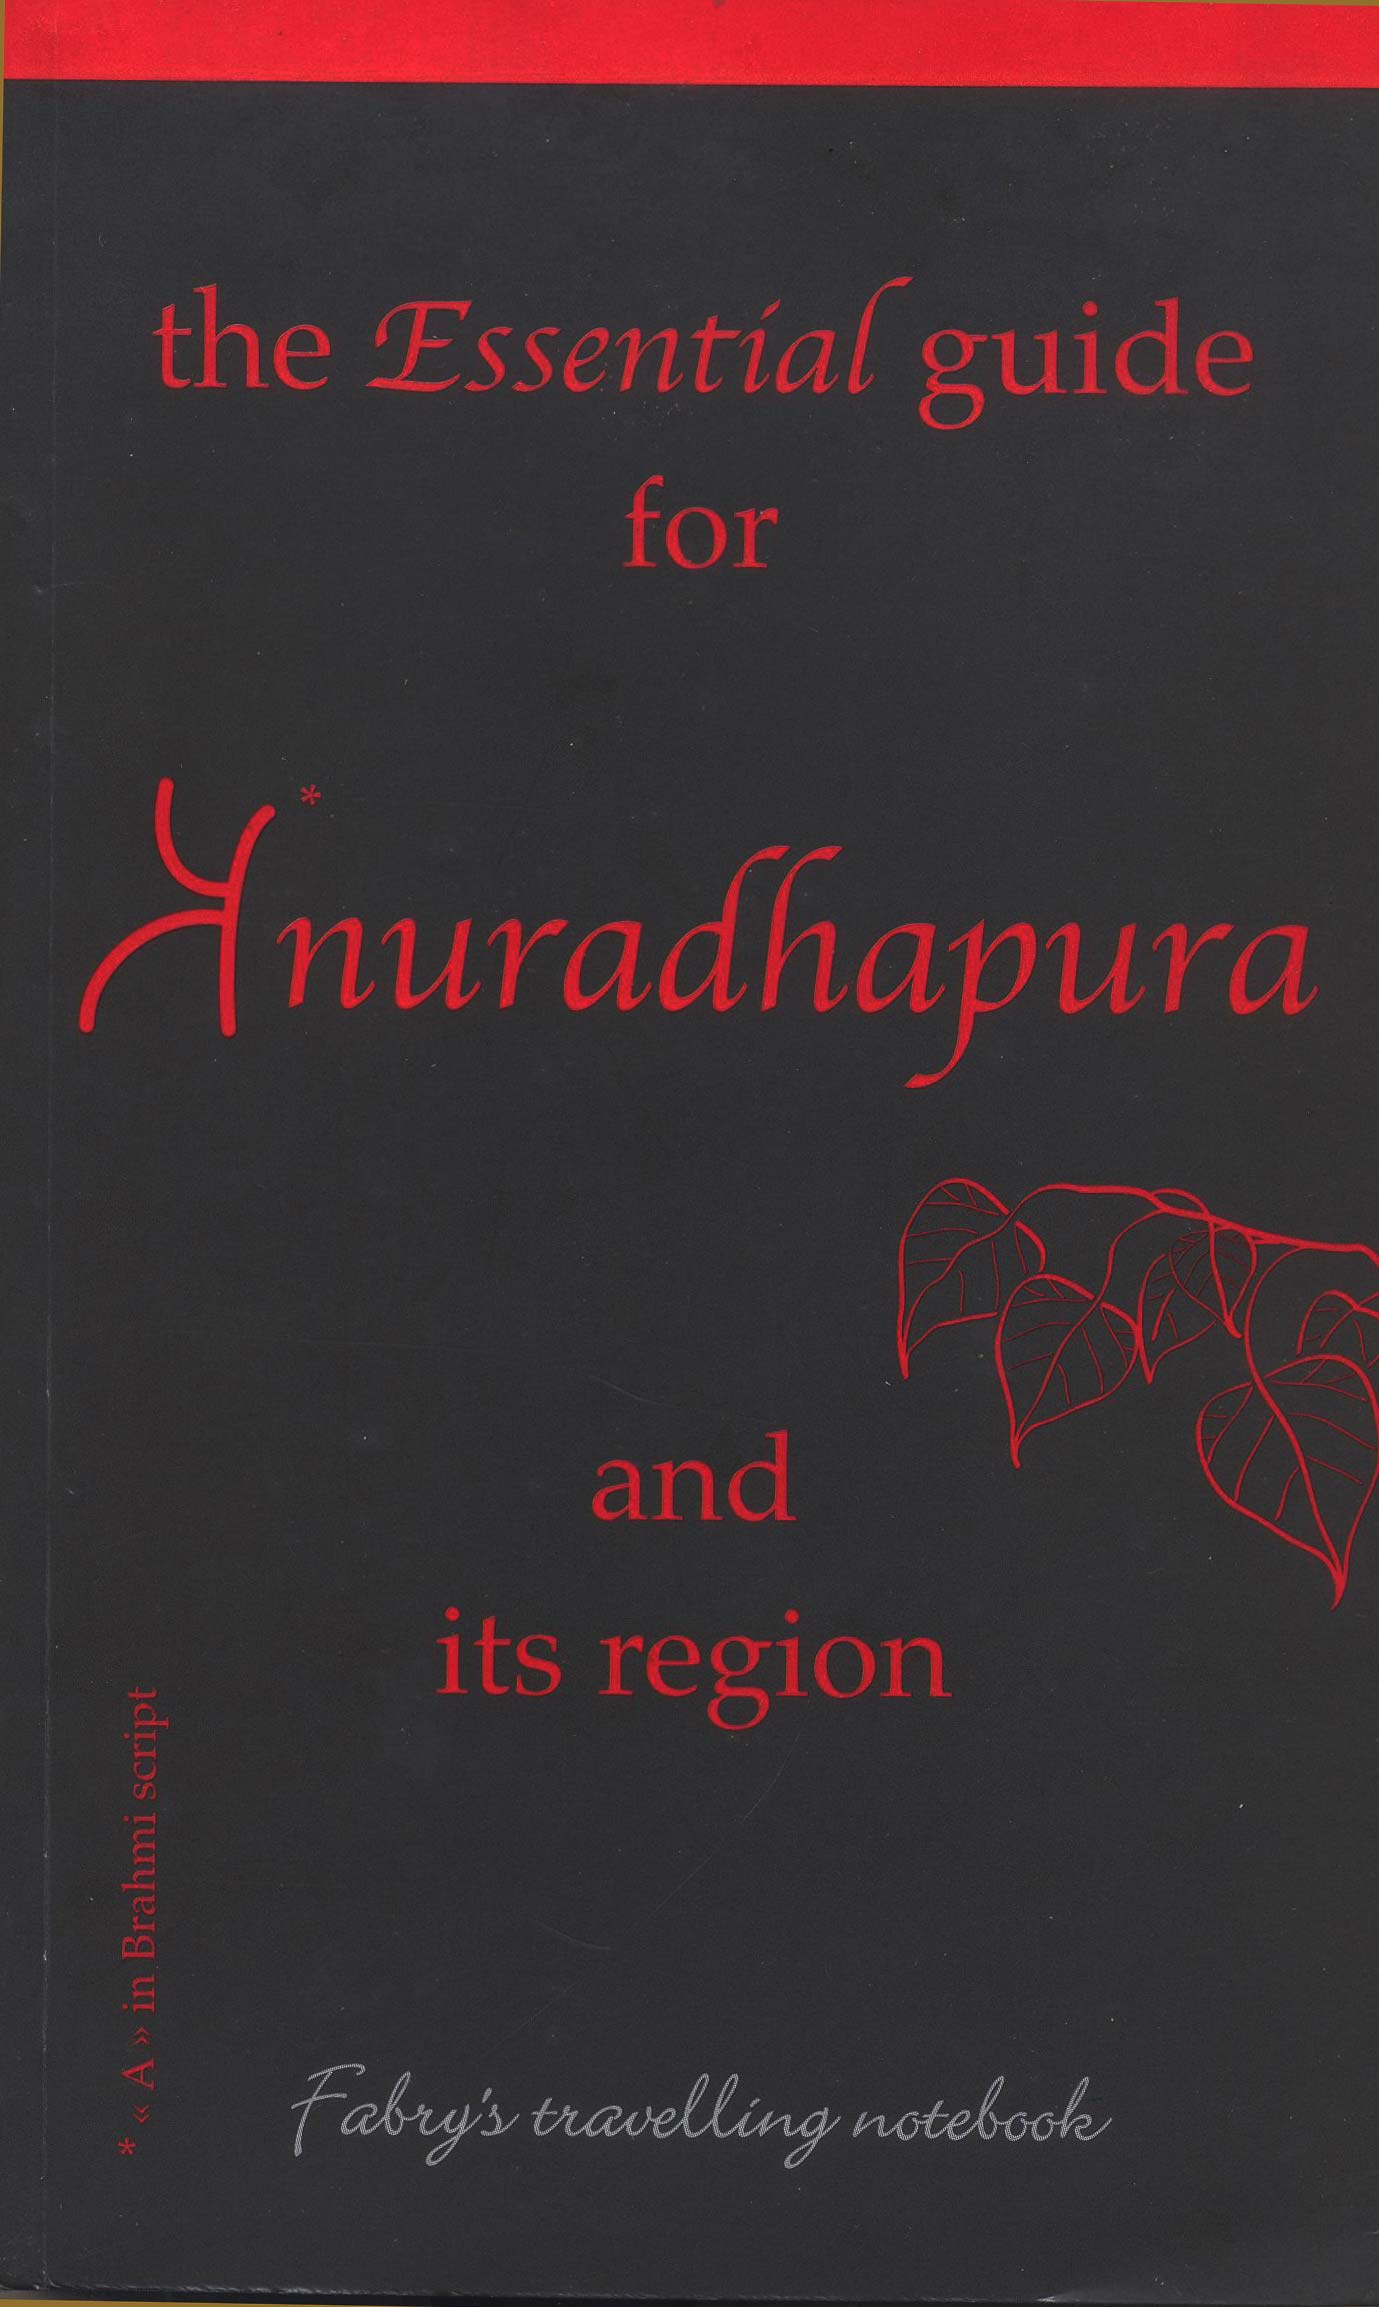 The Essential Guide for Anuradhapura and its region